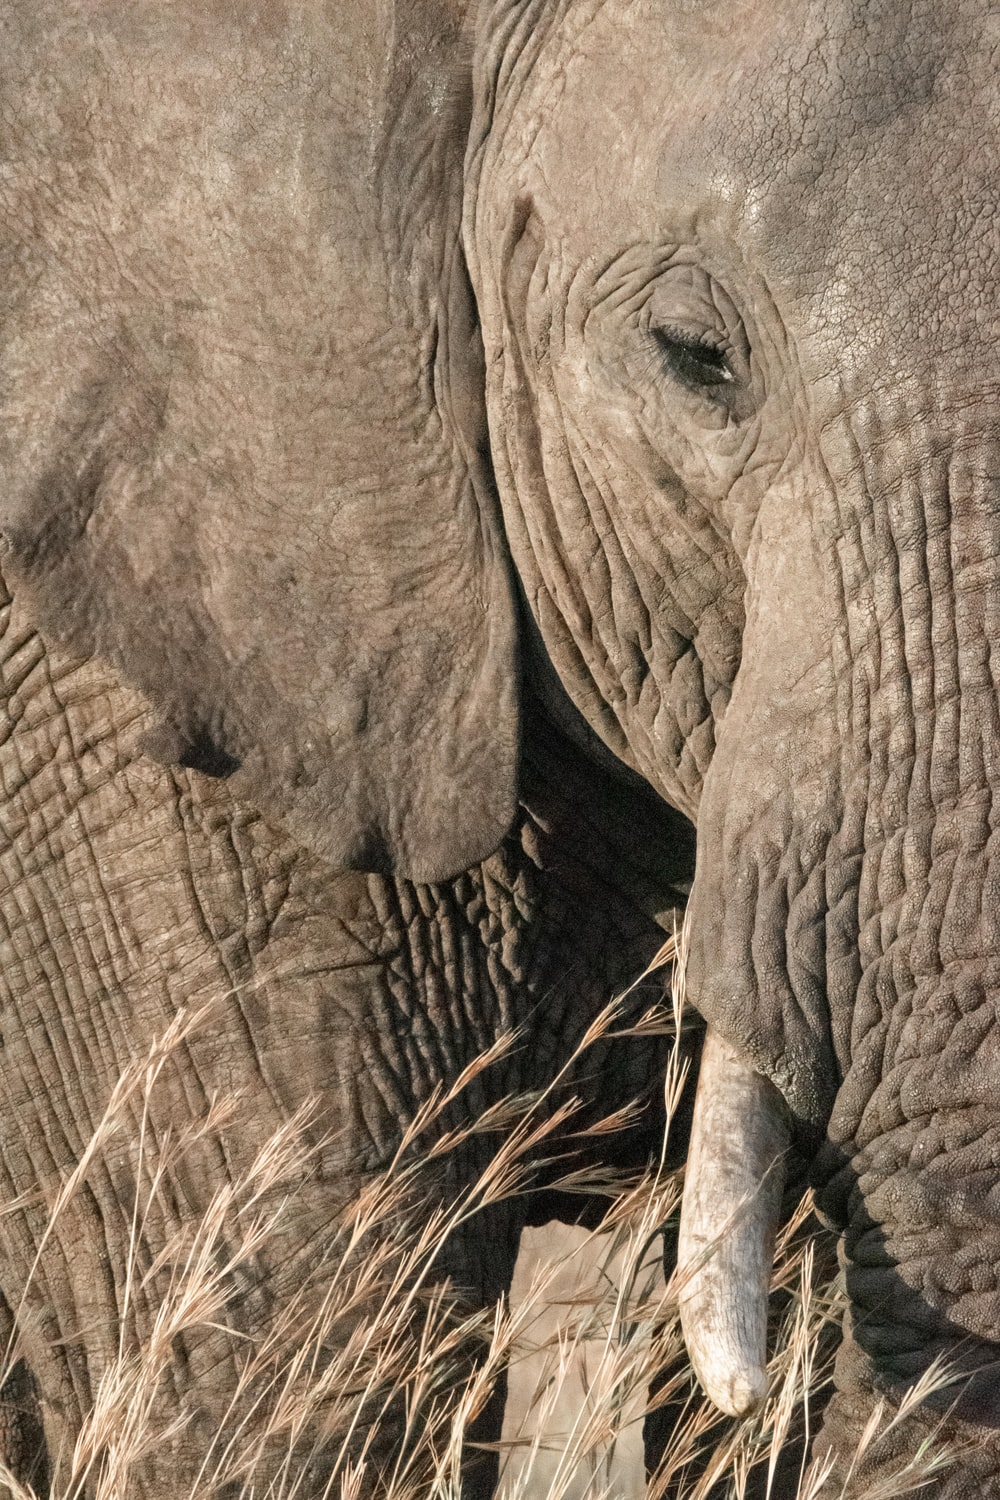 close-up photography of elephant's face